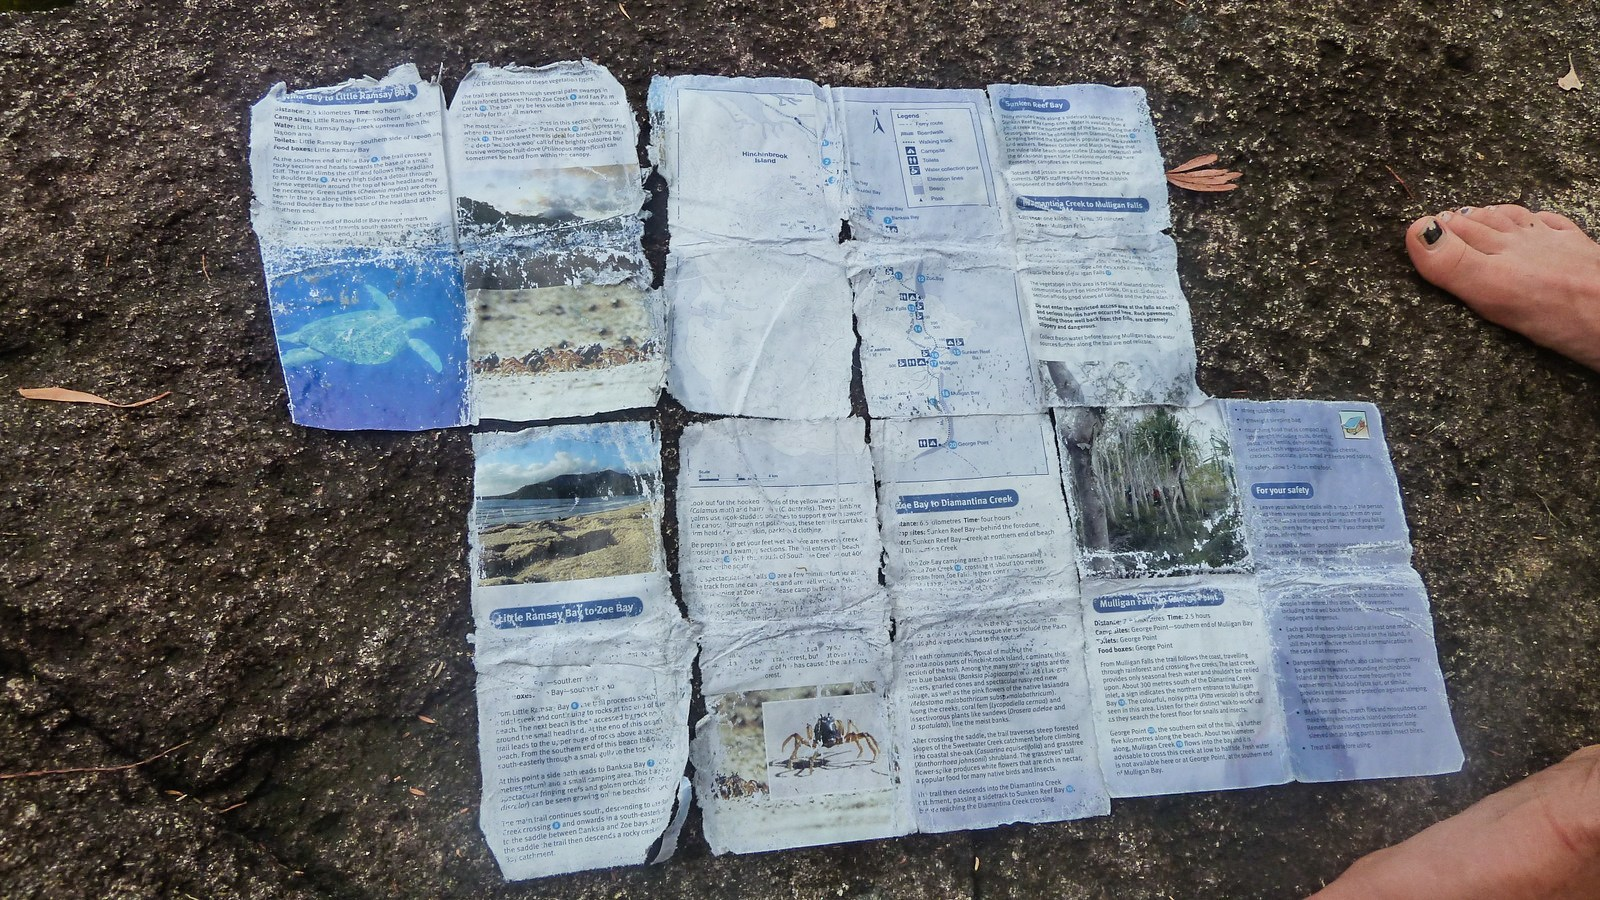 a photo of a torn hinchinbrook island hiking map